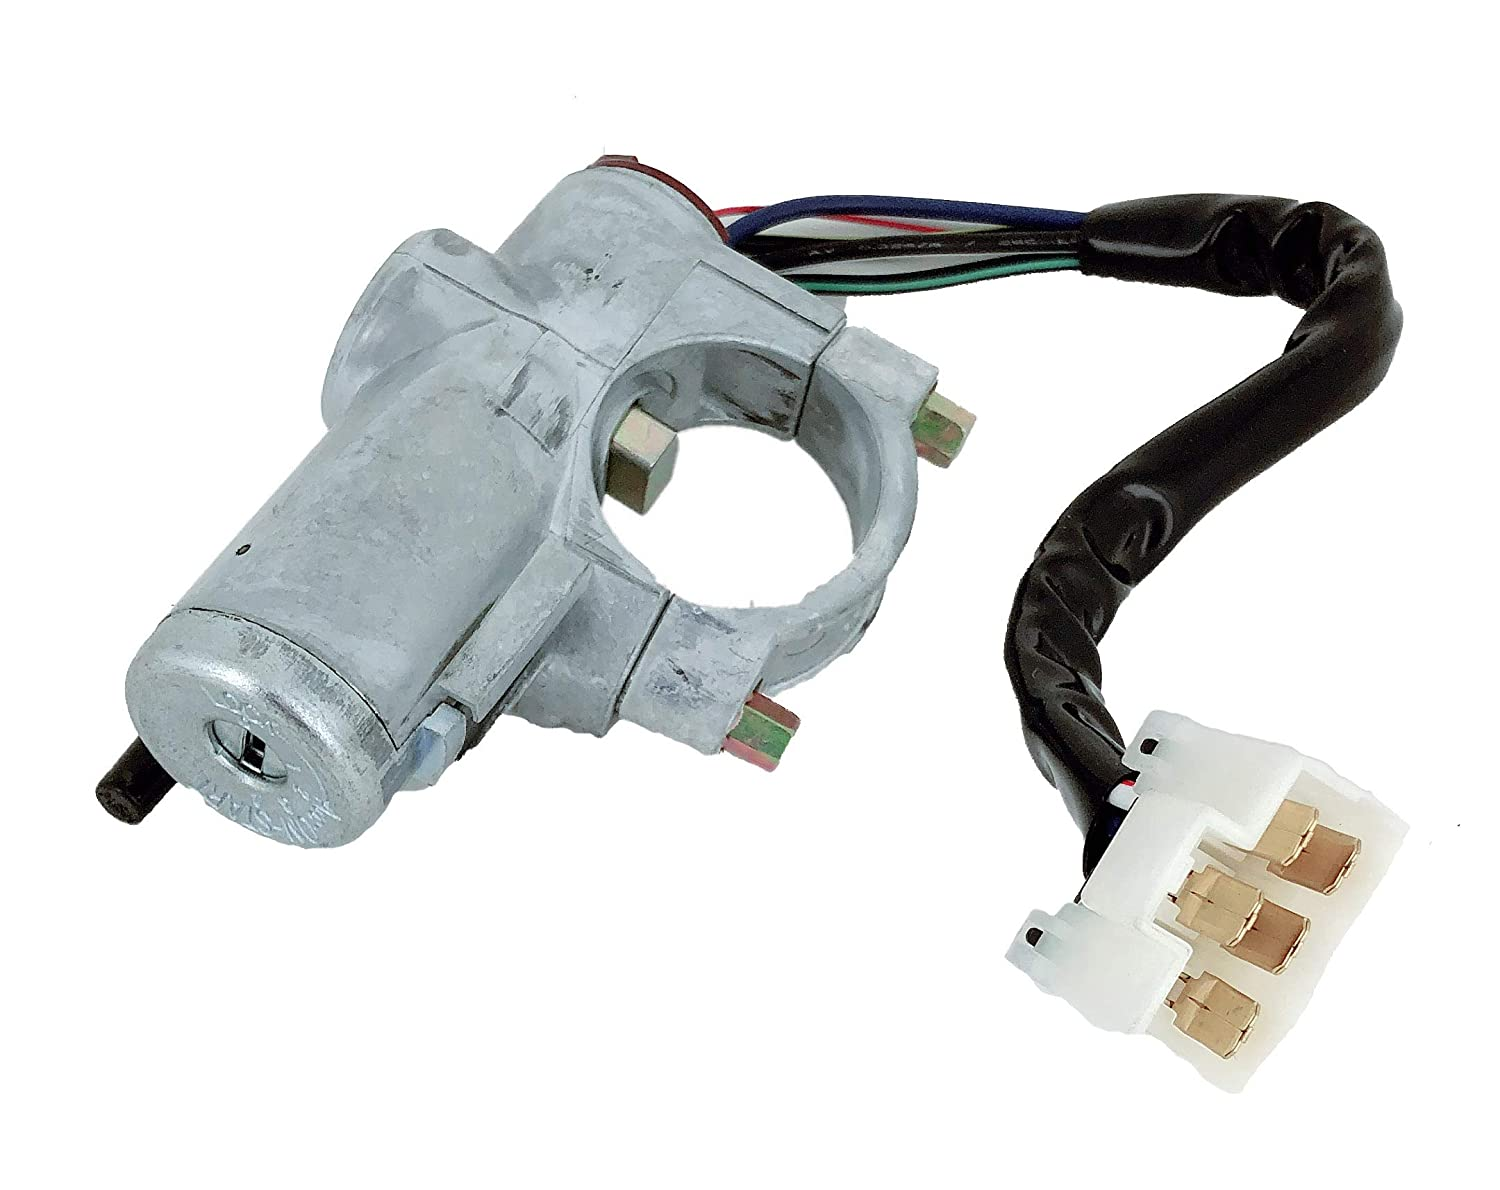 Ignition Lock & Tumbler Well Auto Ignition Steering Lock w/Switch ...